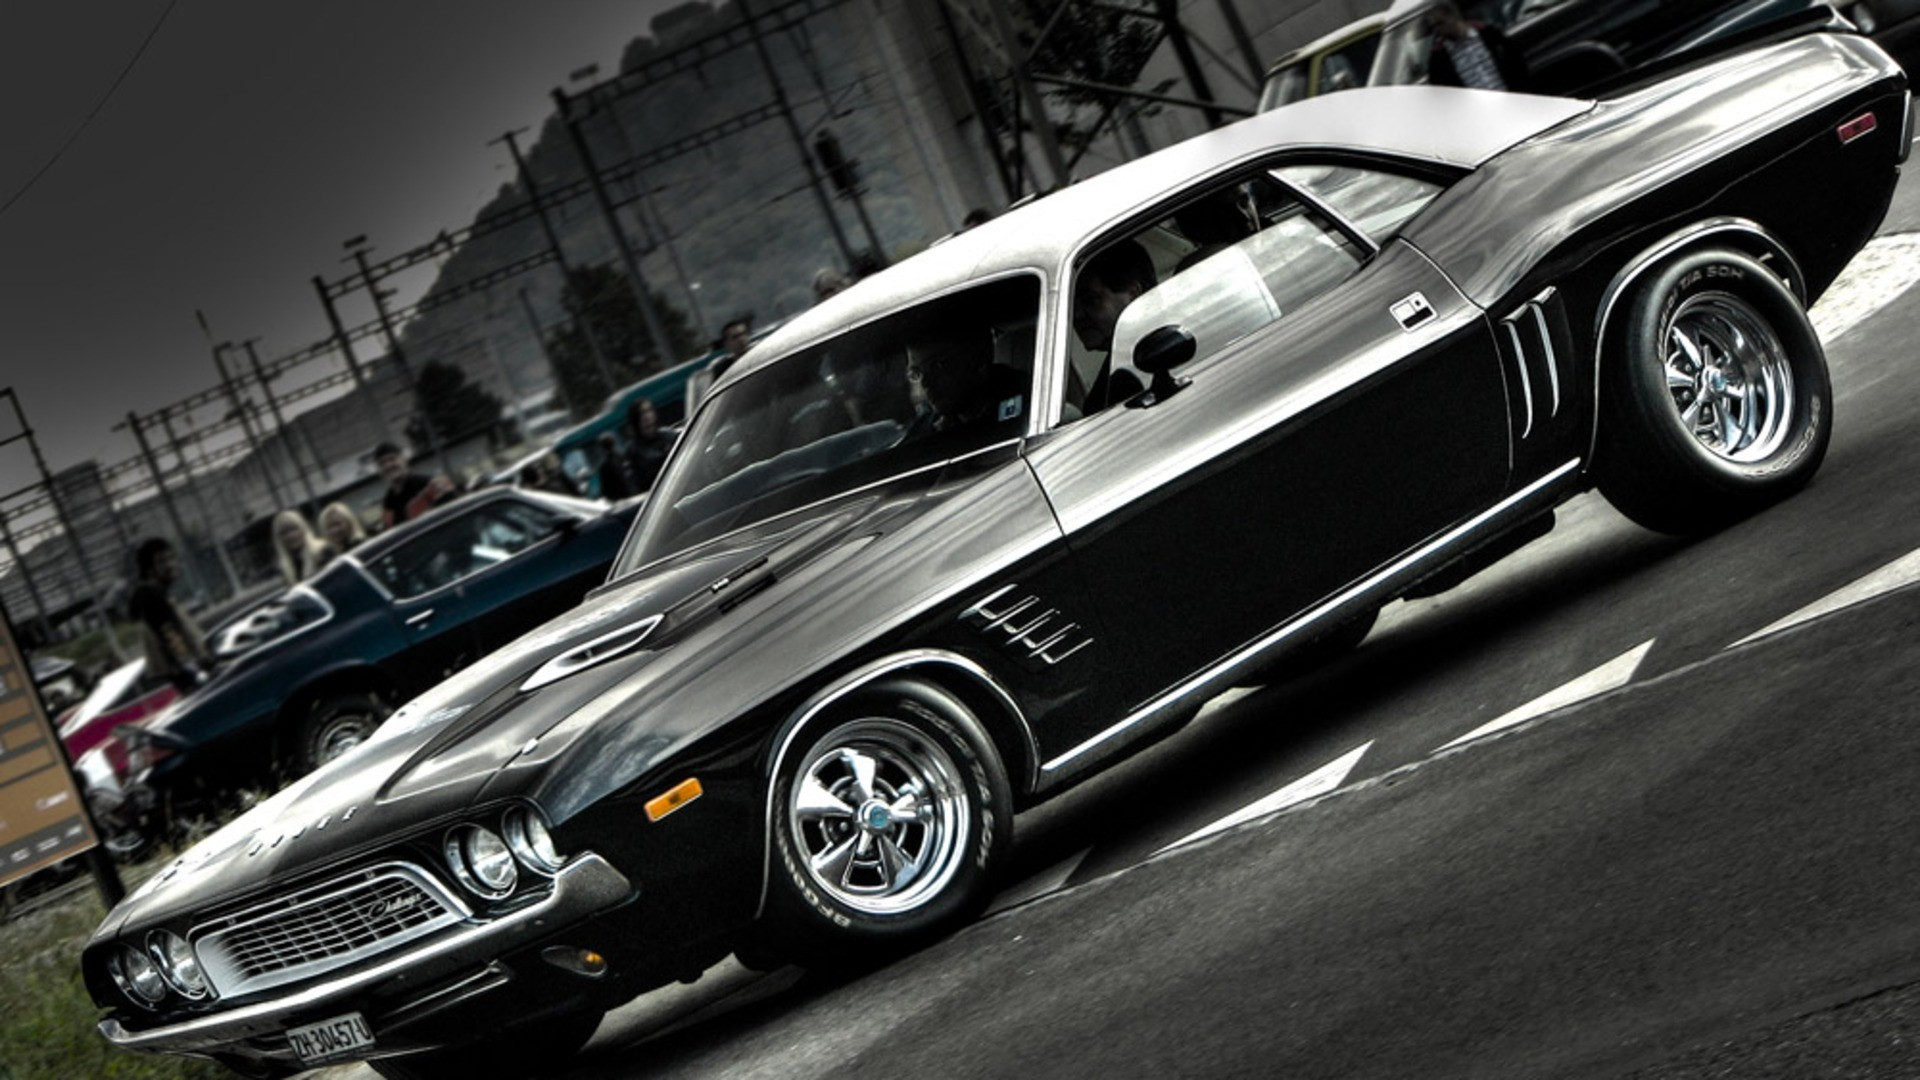 Classic American Muscle Car Wallpapers